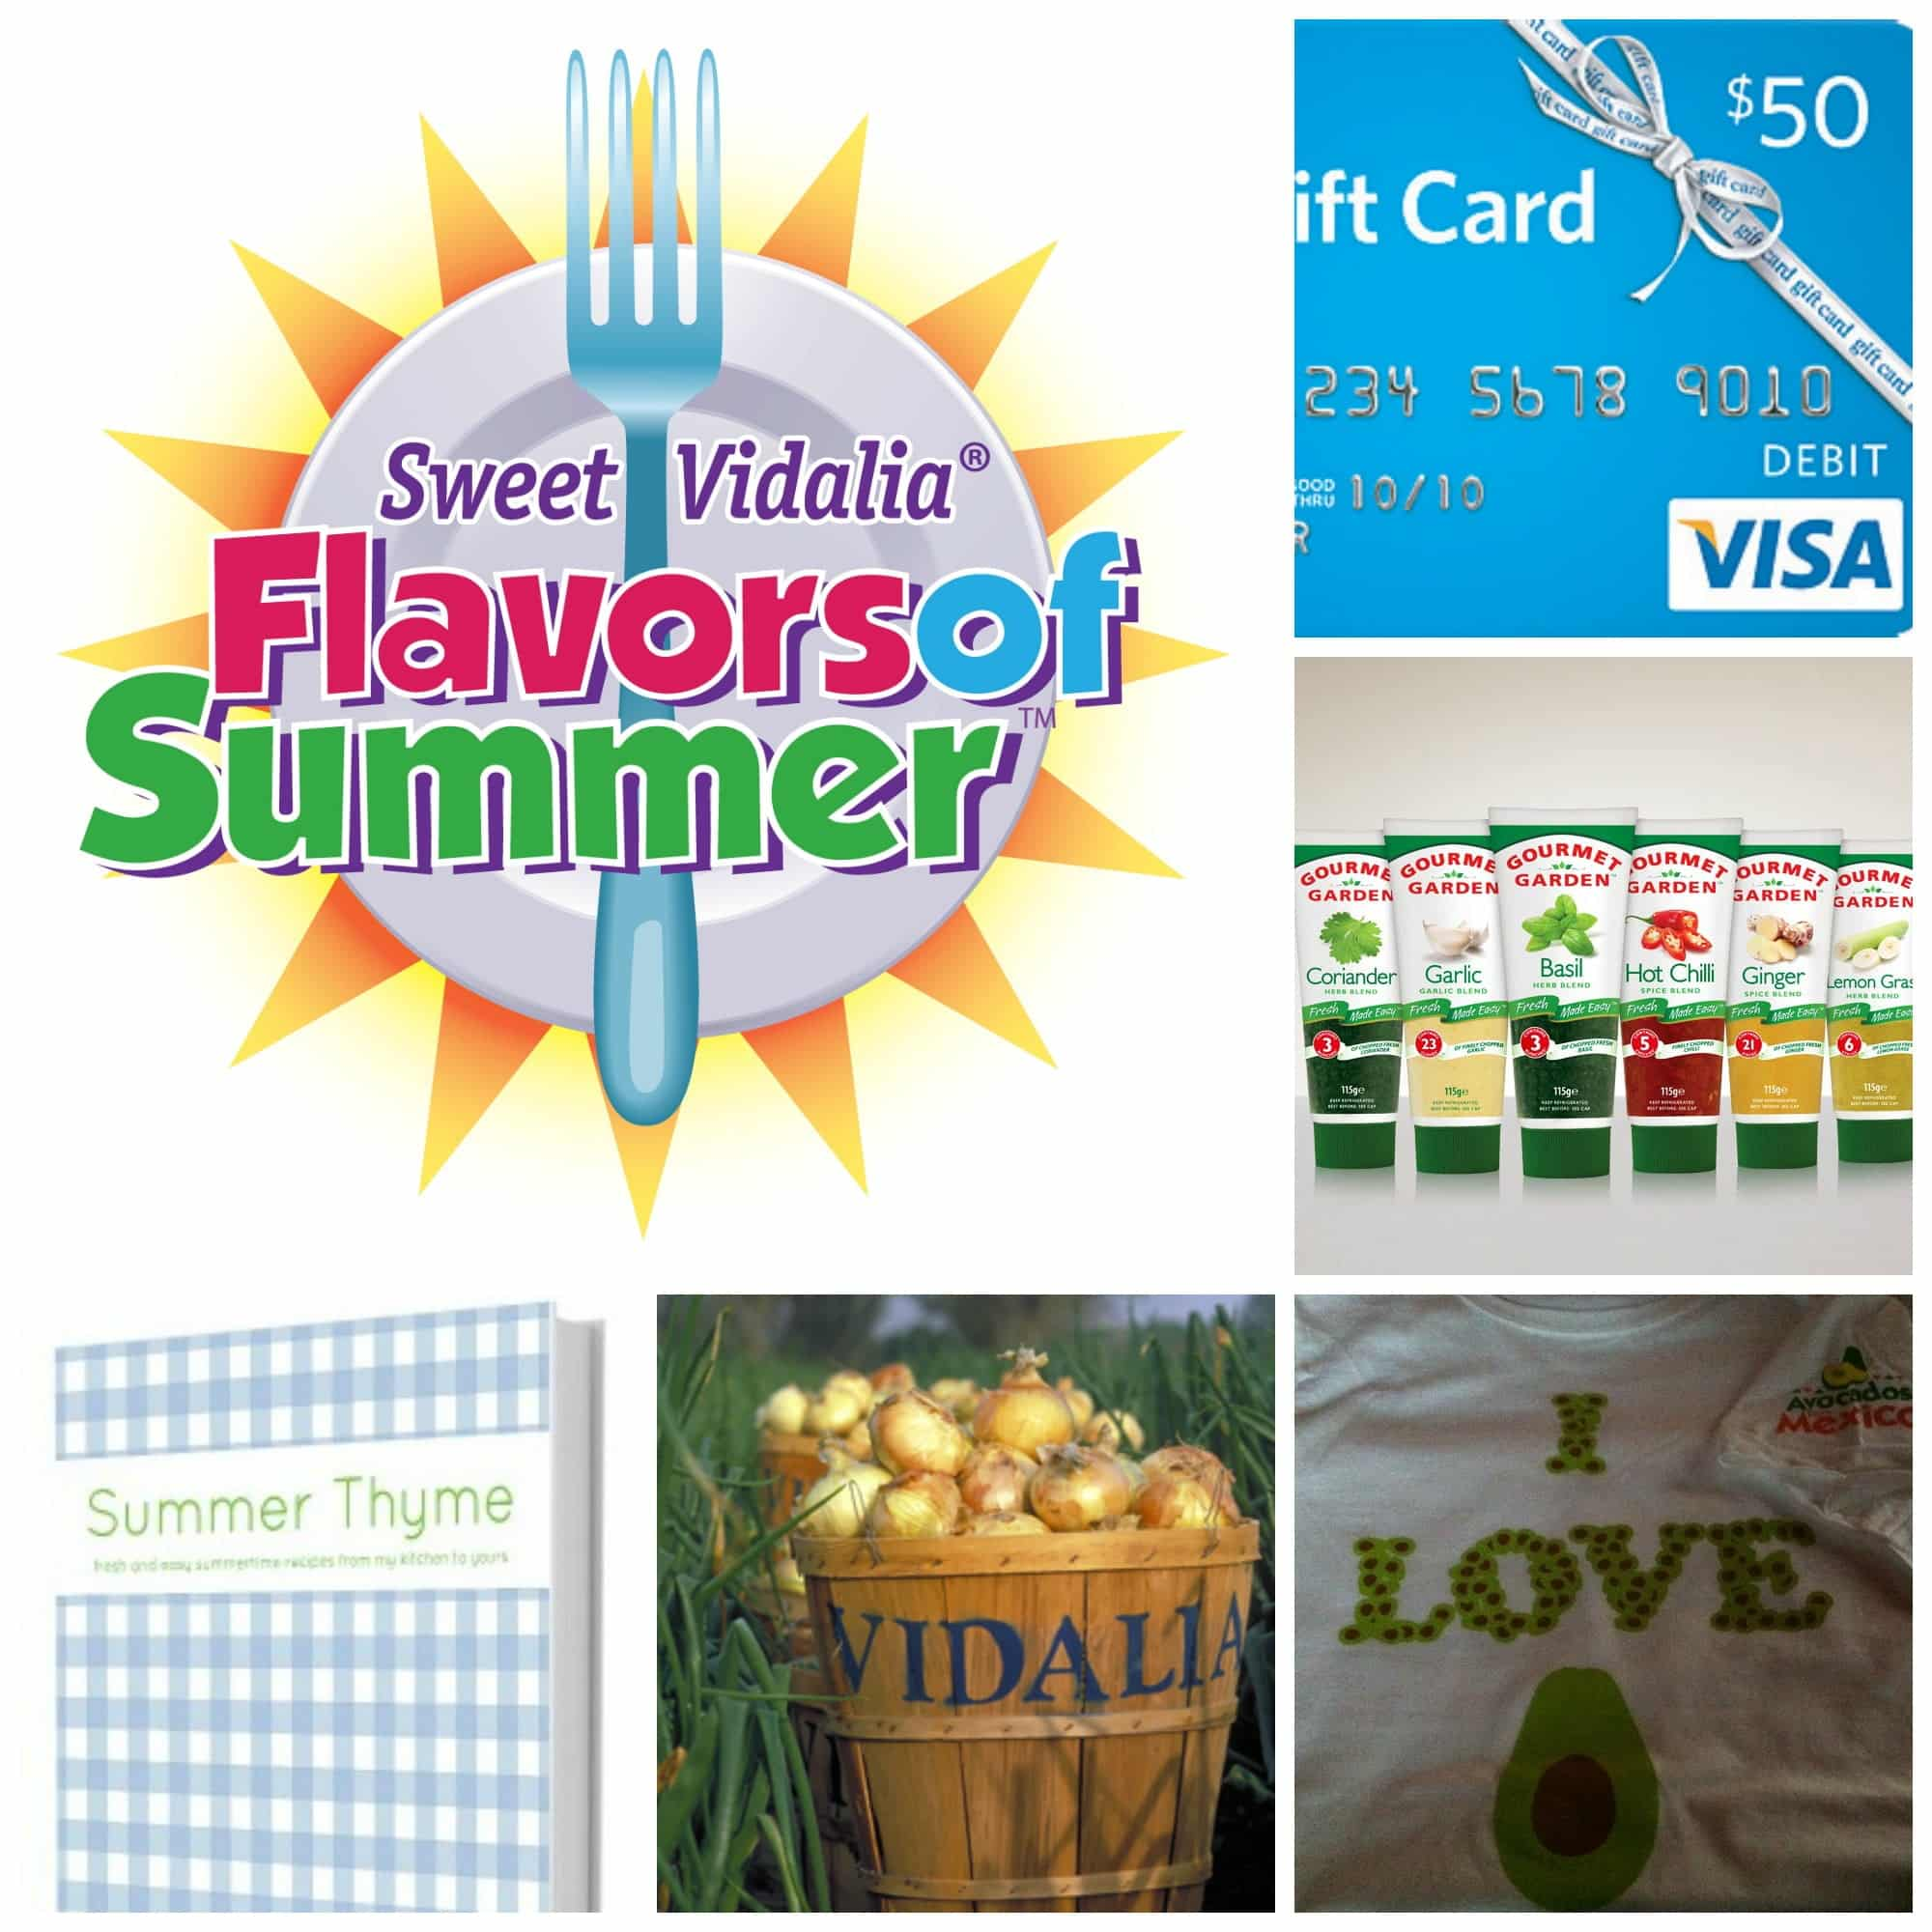 """The Virtual Picnic Prizes: 7 prize packs each containing a $50 Visa Gift Card, , an """"I Love Avocados"""" t-shirt, the newly released cookbook """"Summer Thyme"""" from blogger Jennifer Dempsey, fresh Vidalia onions, and squeezable herbs from Gourmet Garden."""